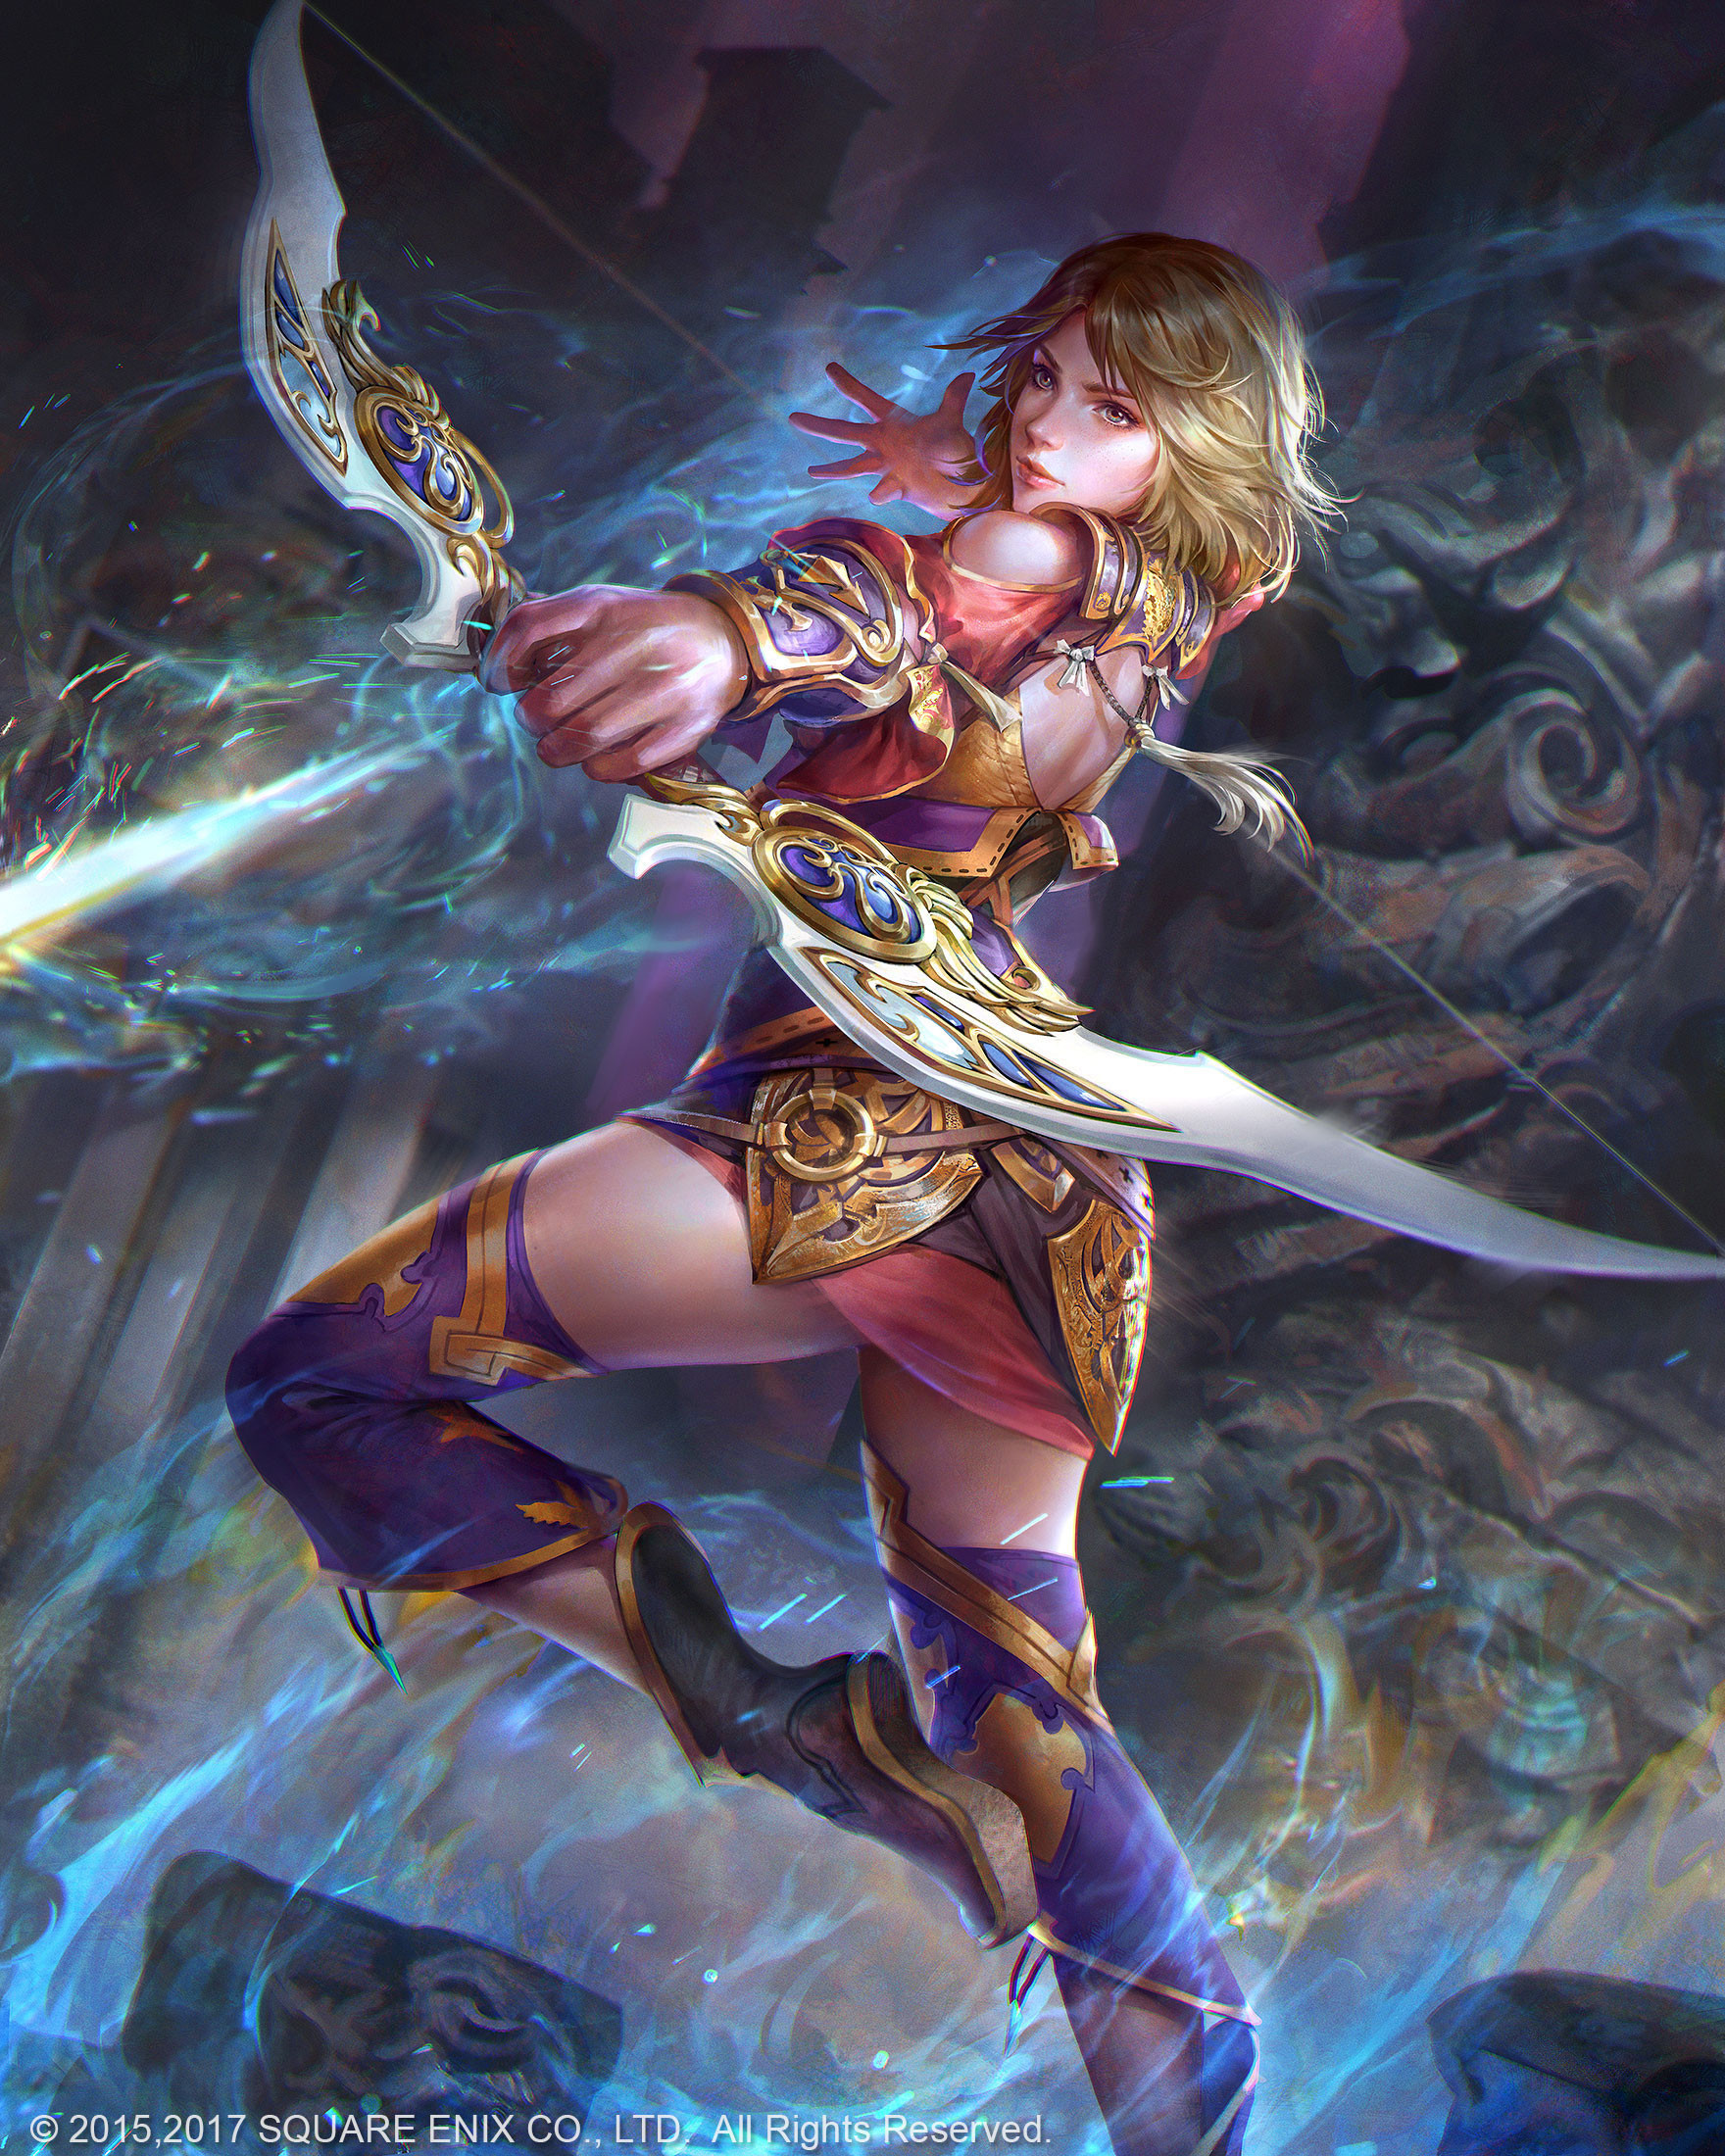 Jeremy chong sarah summoner samifinal post